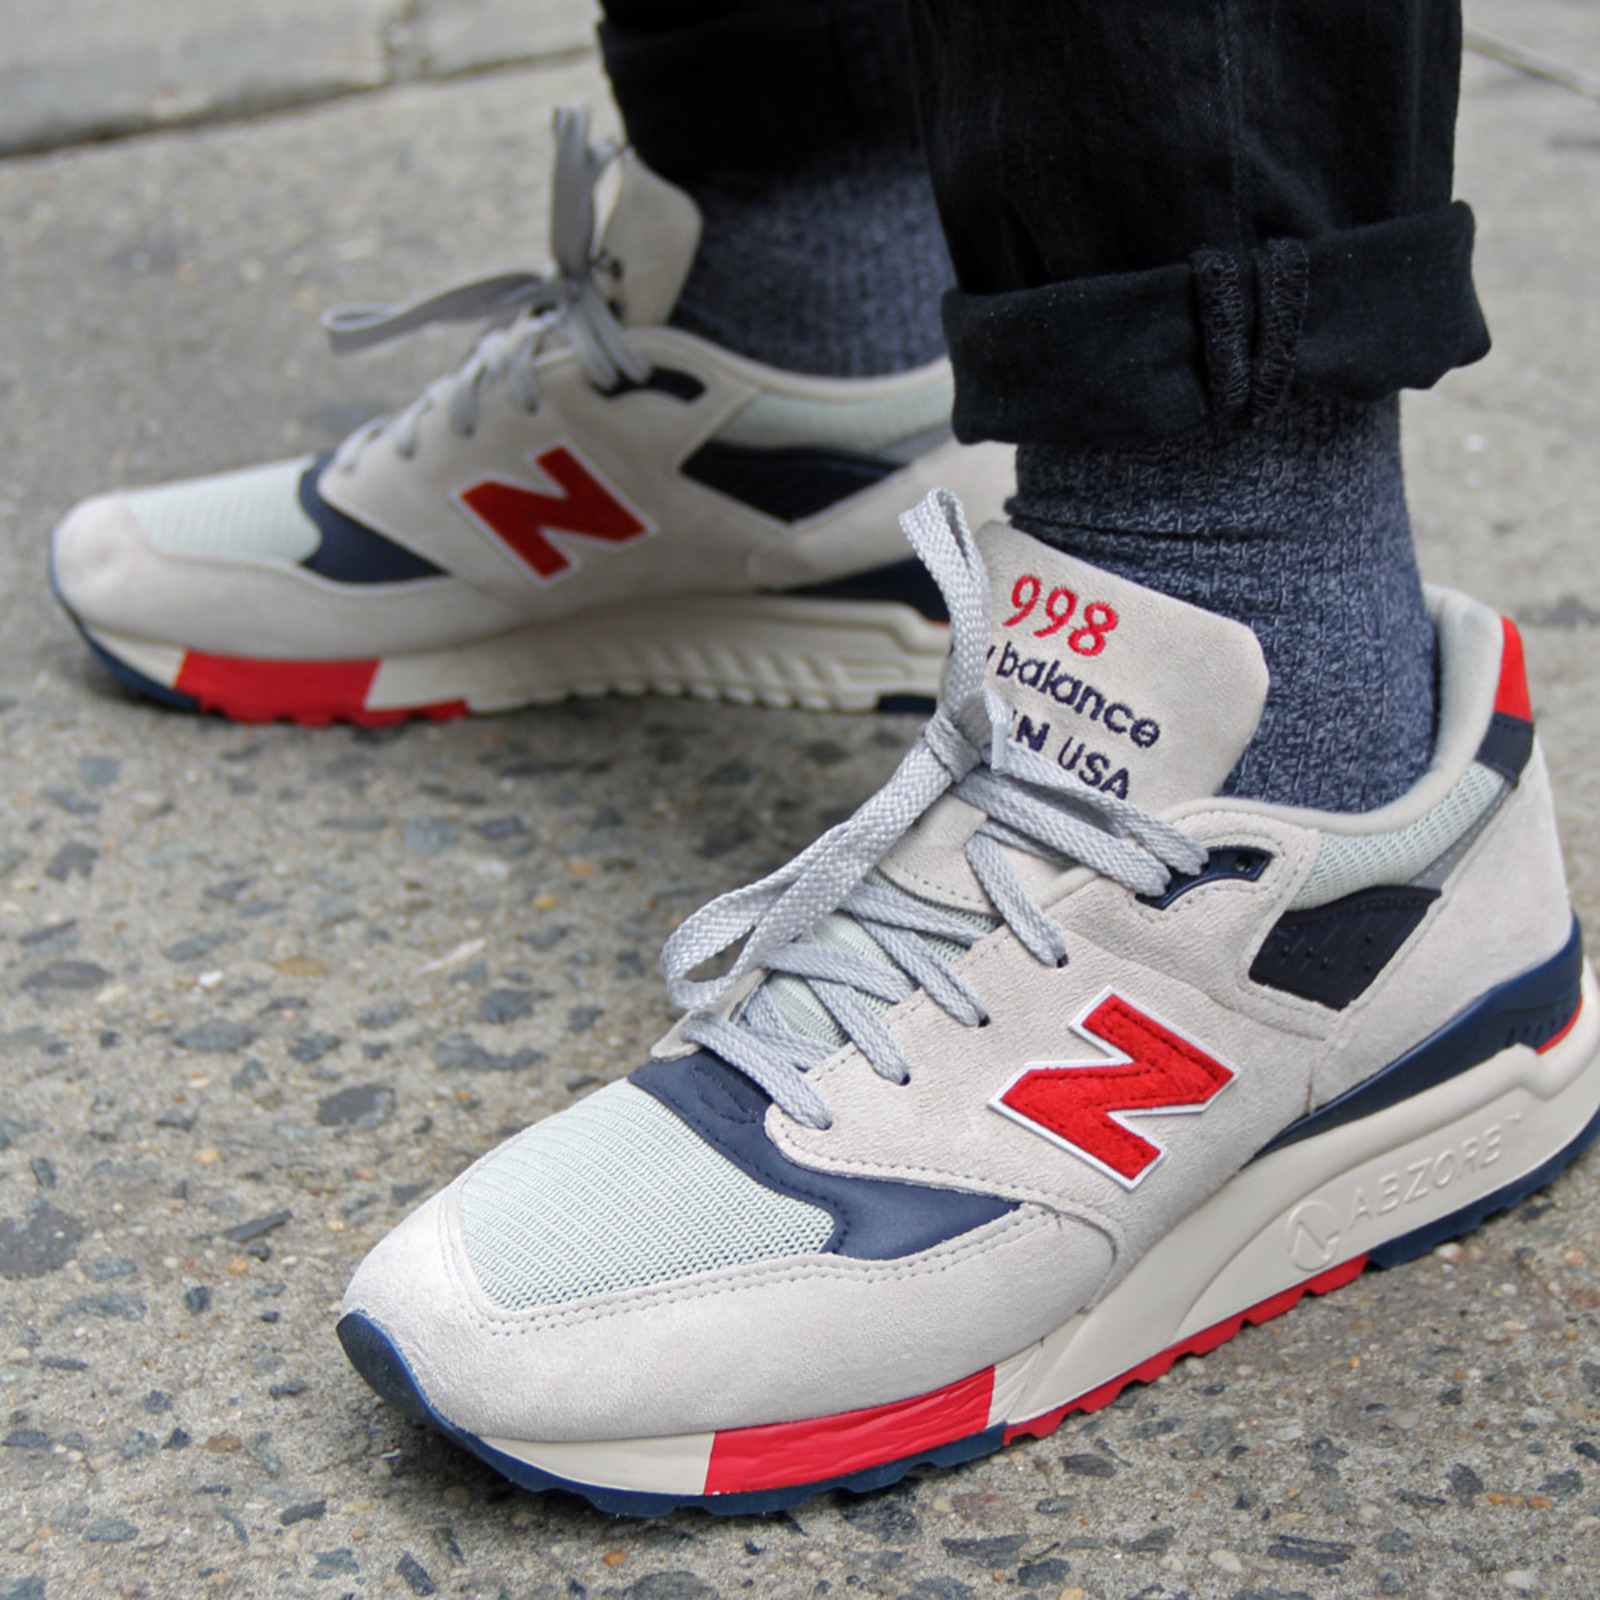 new balance 998 made in usa for sale